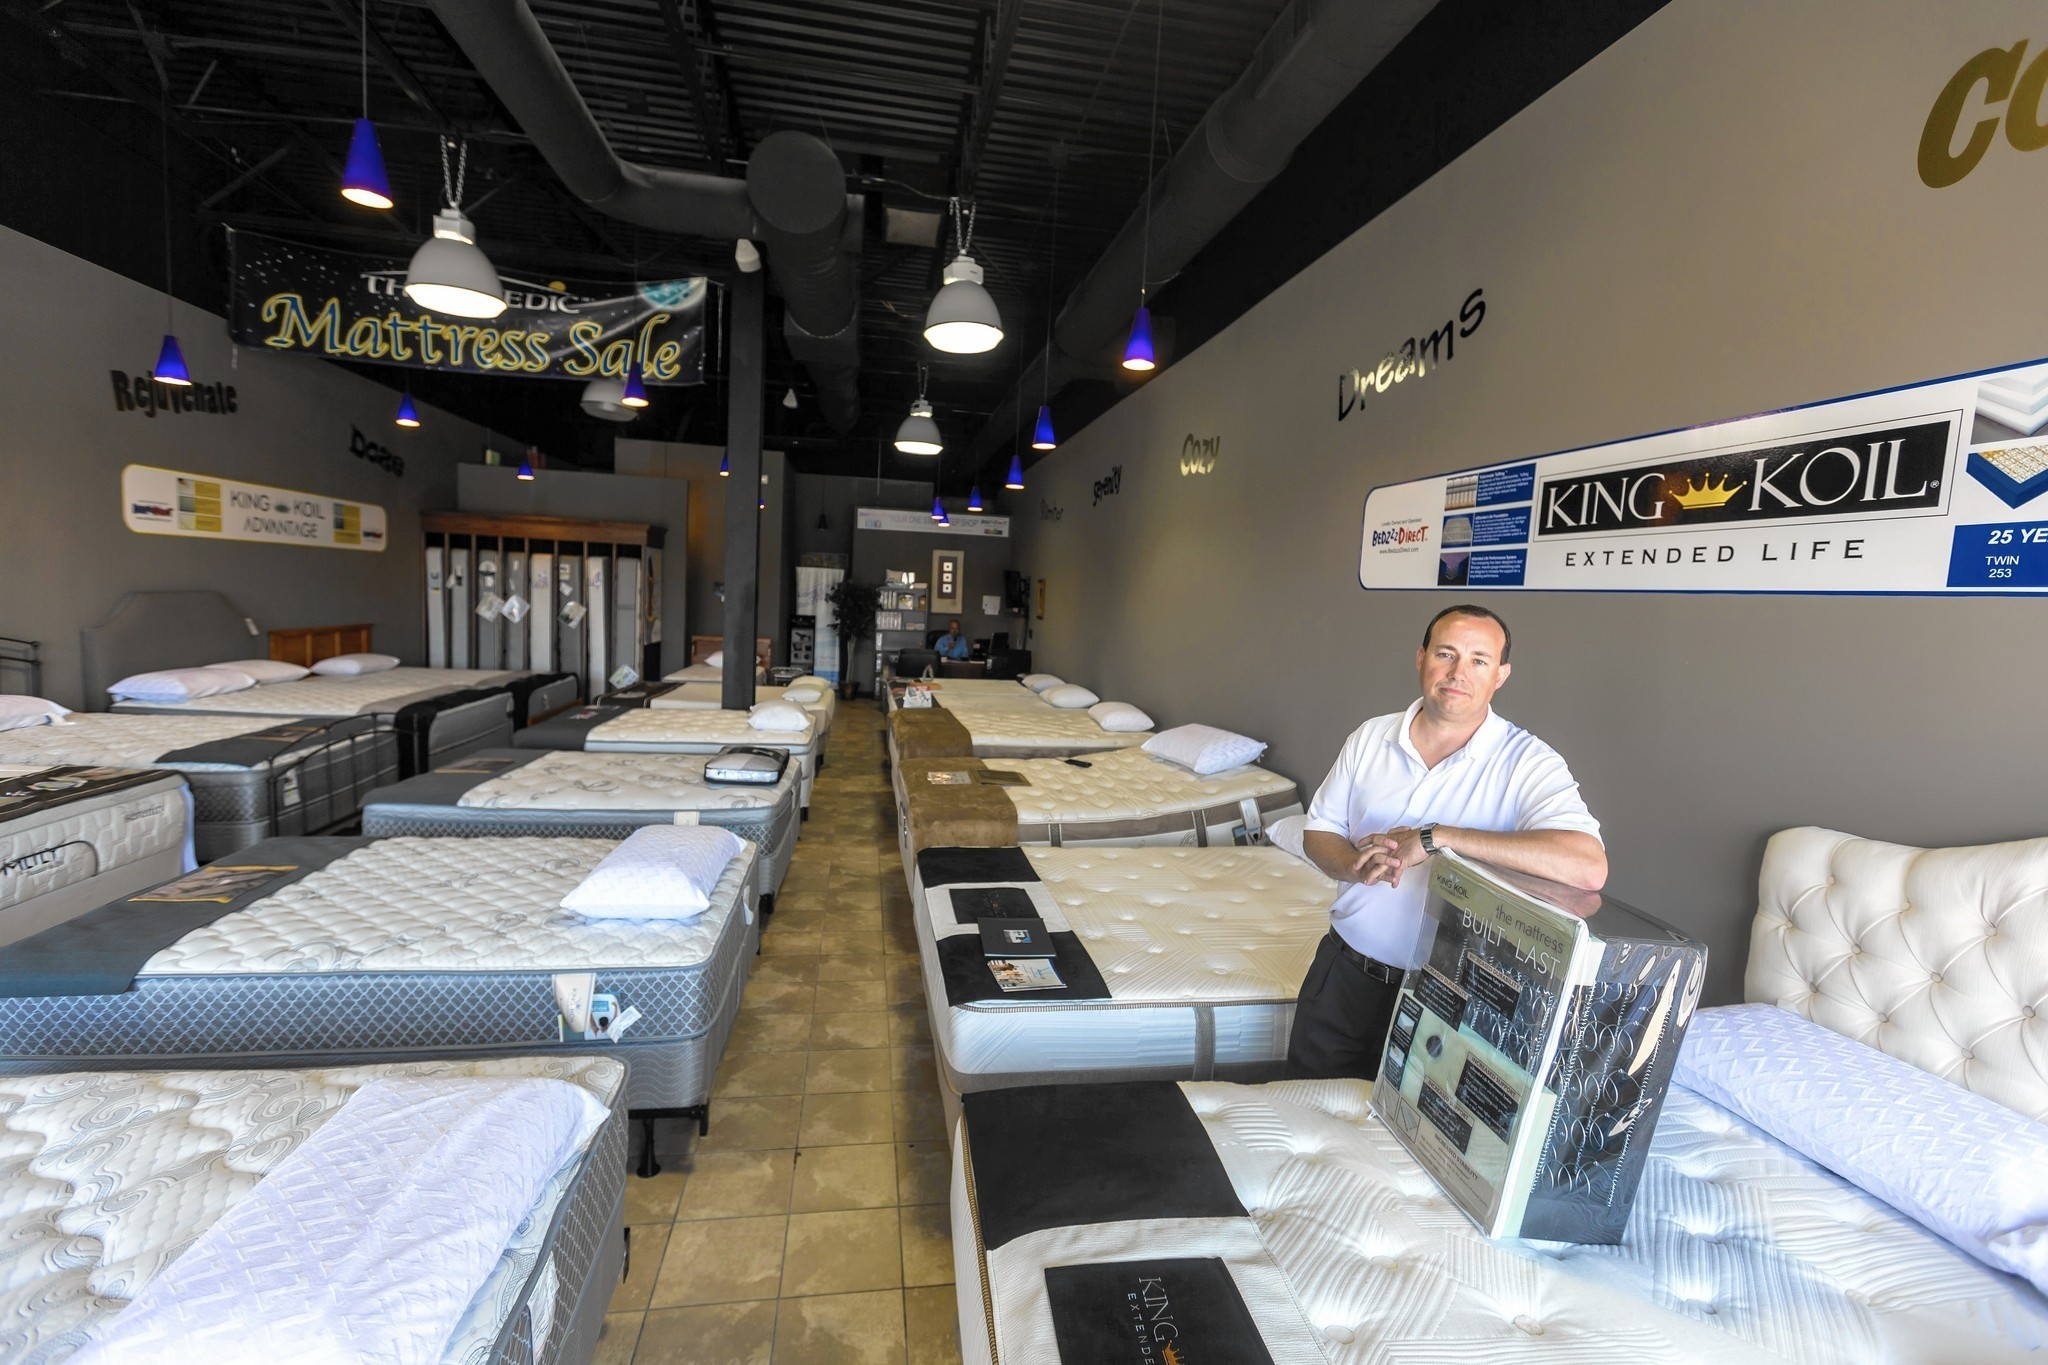 Mattress store explosion leaves no time to sleep on the job  PostTribune